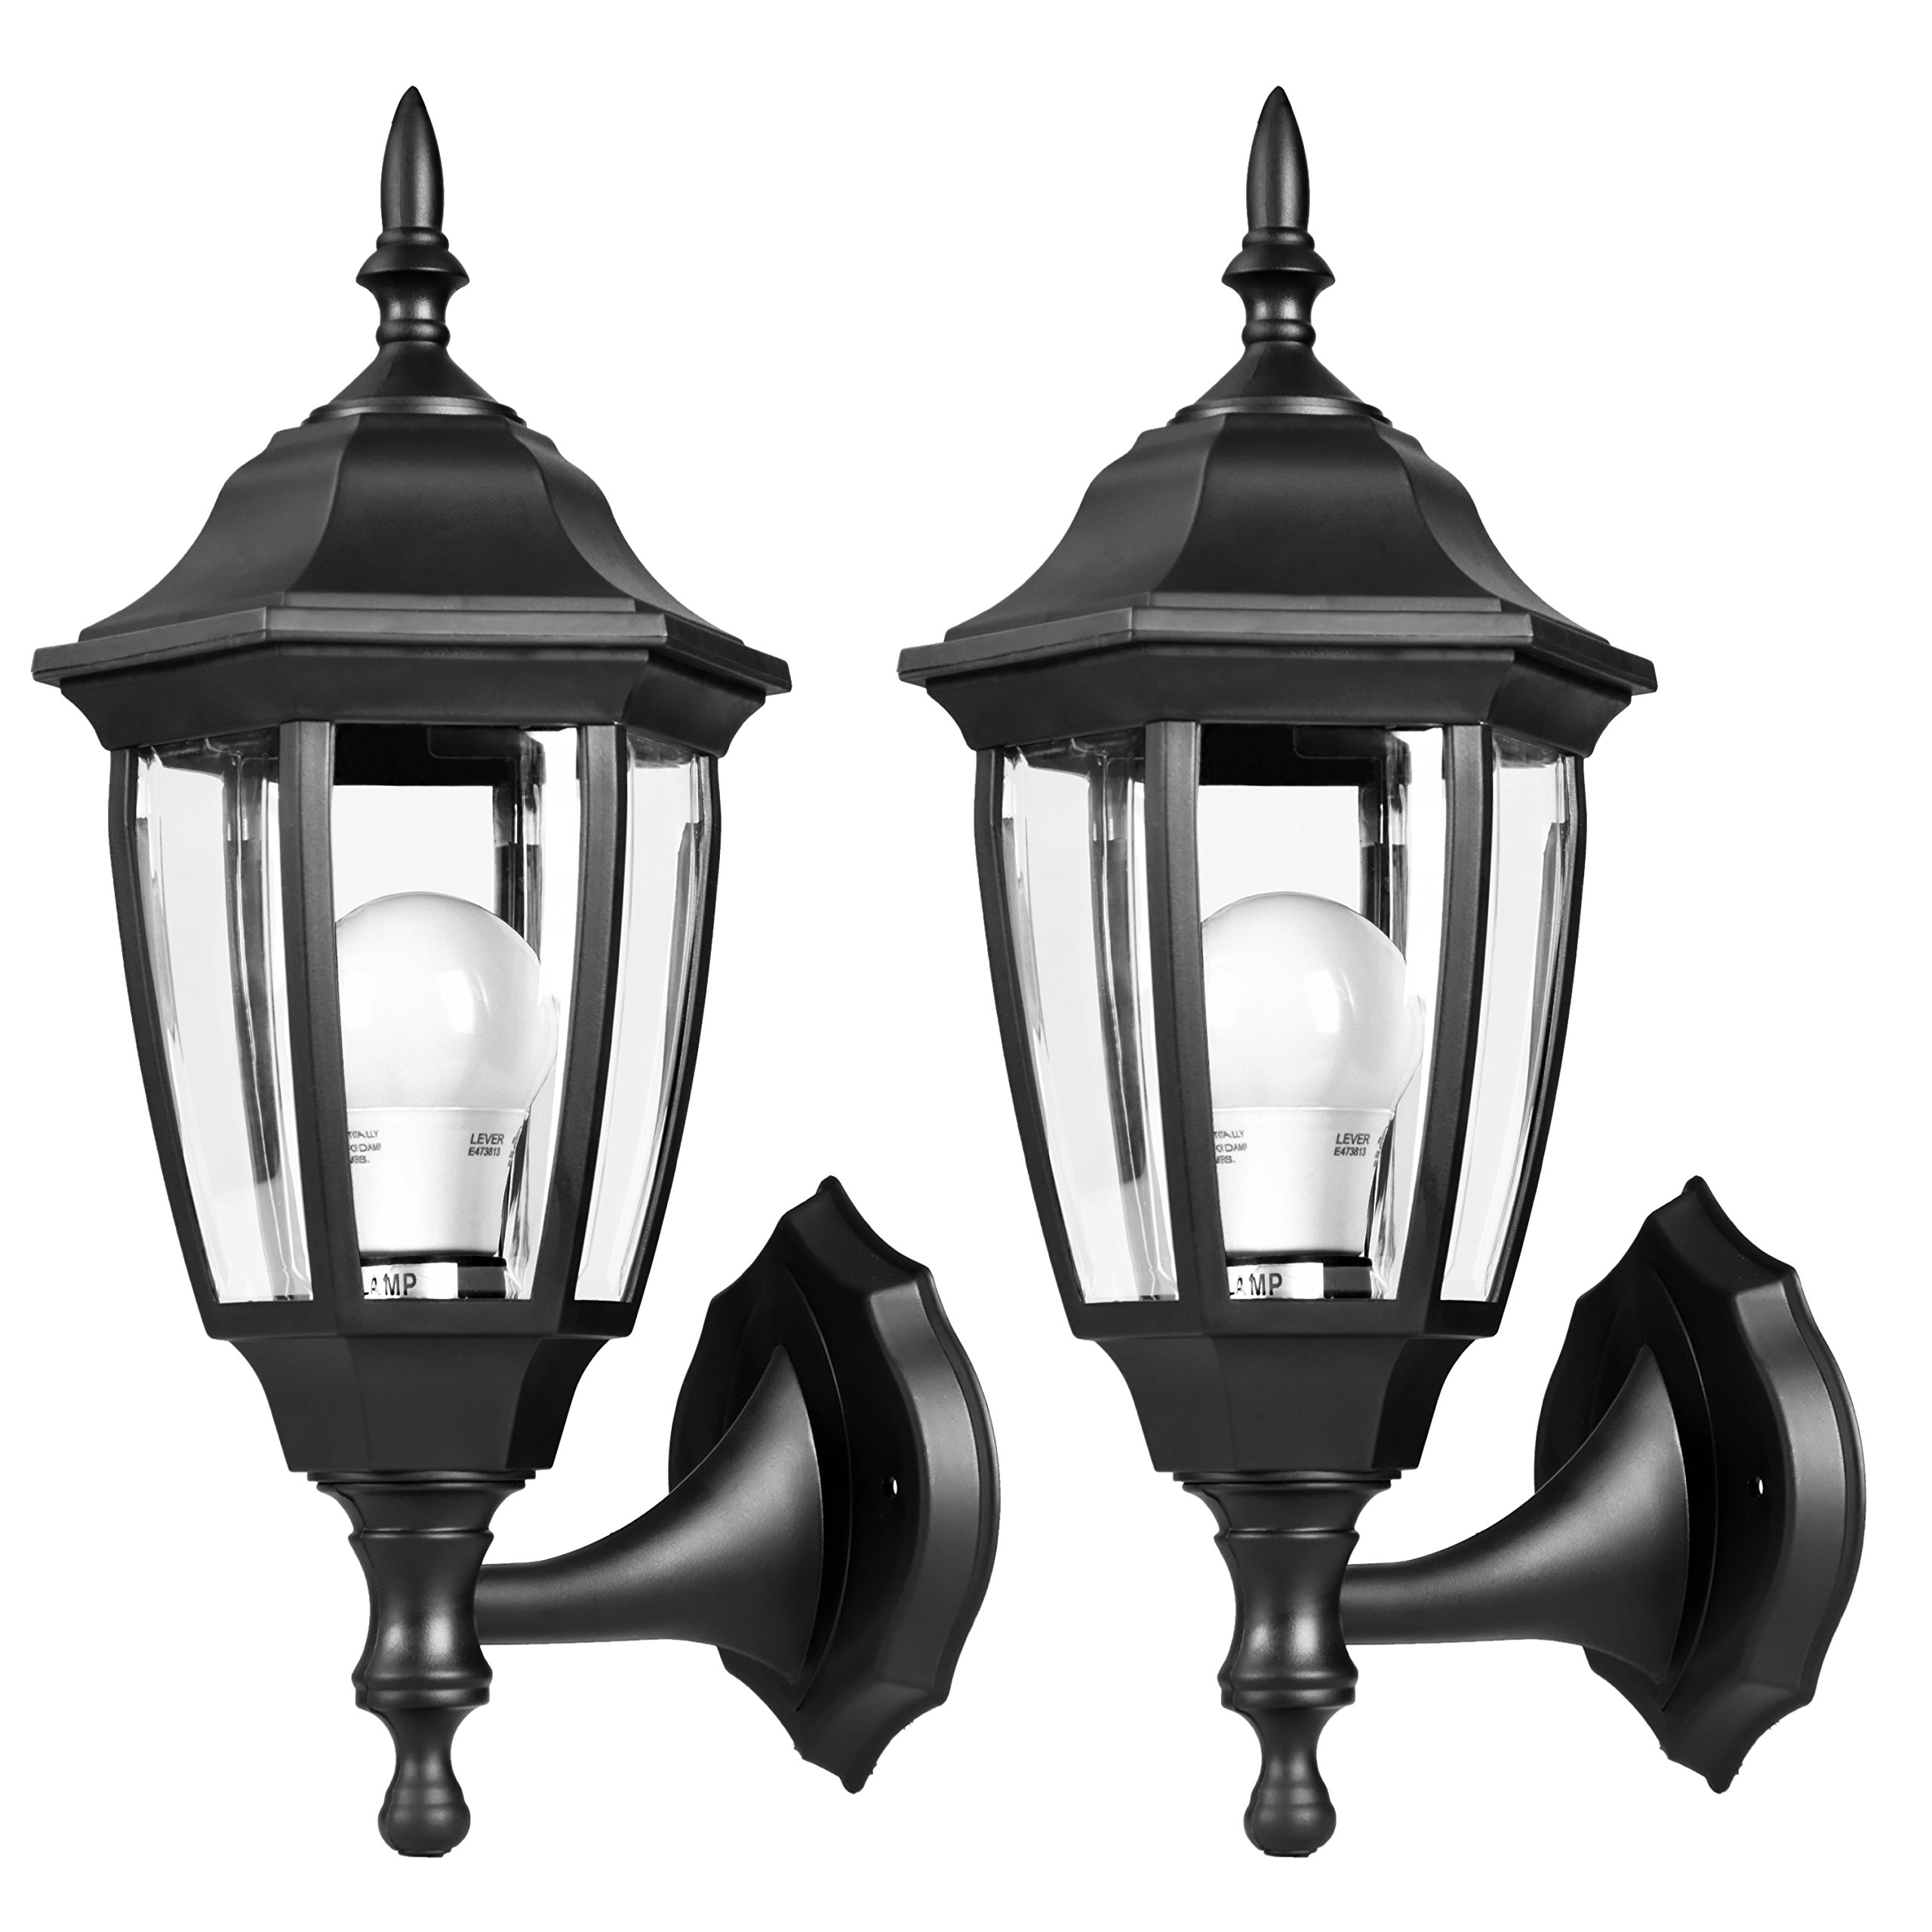 EMART Outdoor Porch Light LED Exterior Wall Light Fixtures, Special Handling Anti-Corrosion Plastic Material, Waterproof Security Lamp for Wall, Garage, Front Porch - 2 Pack by EMART